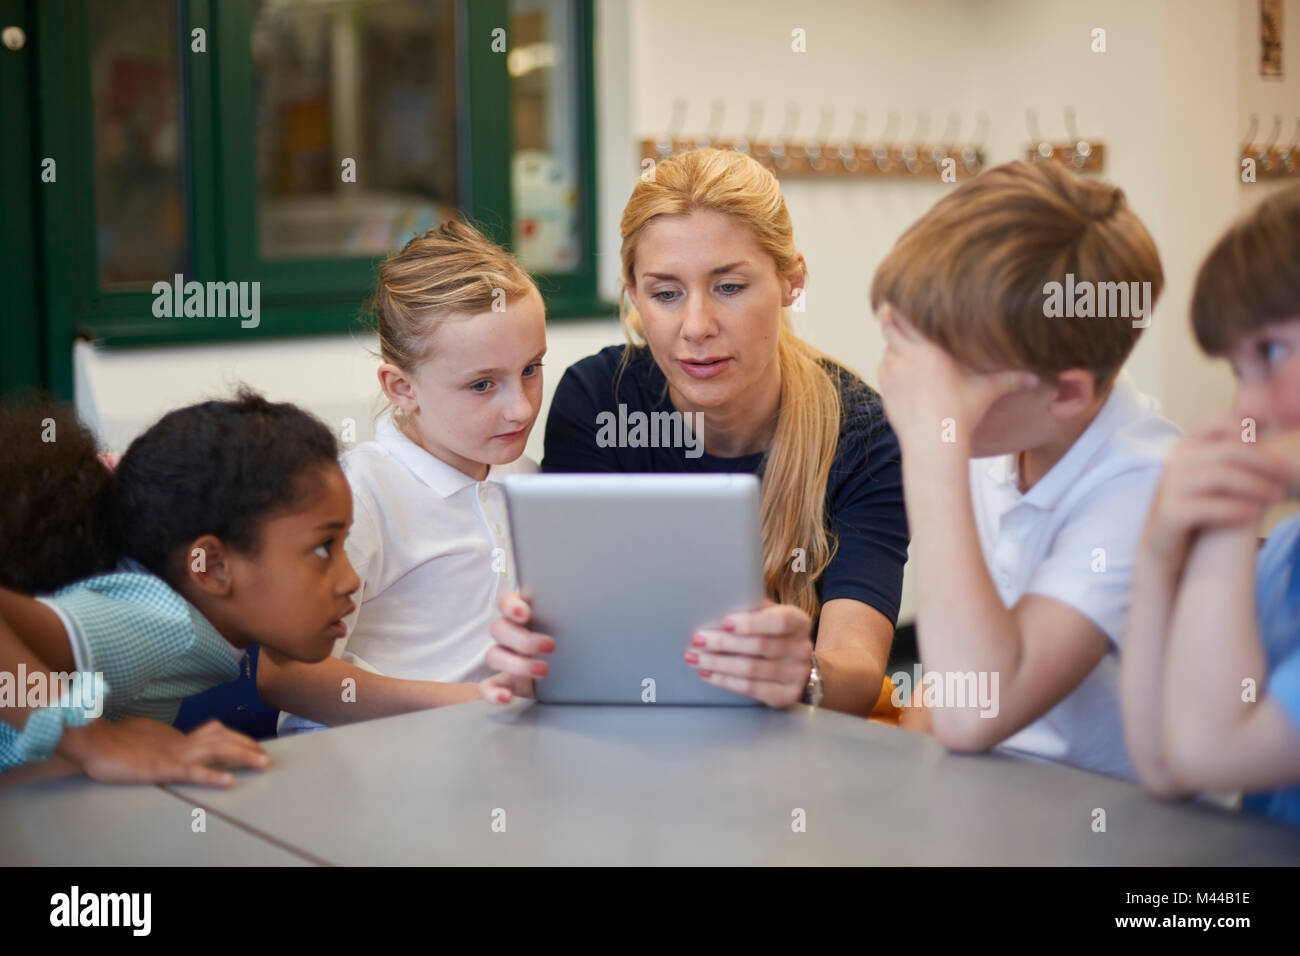 Teacher with schoolgirls and boys looking at digital tablet in classroom at primary school - Stock Image